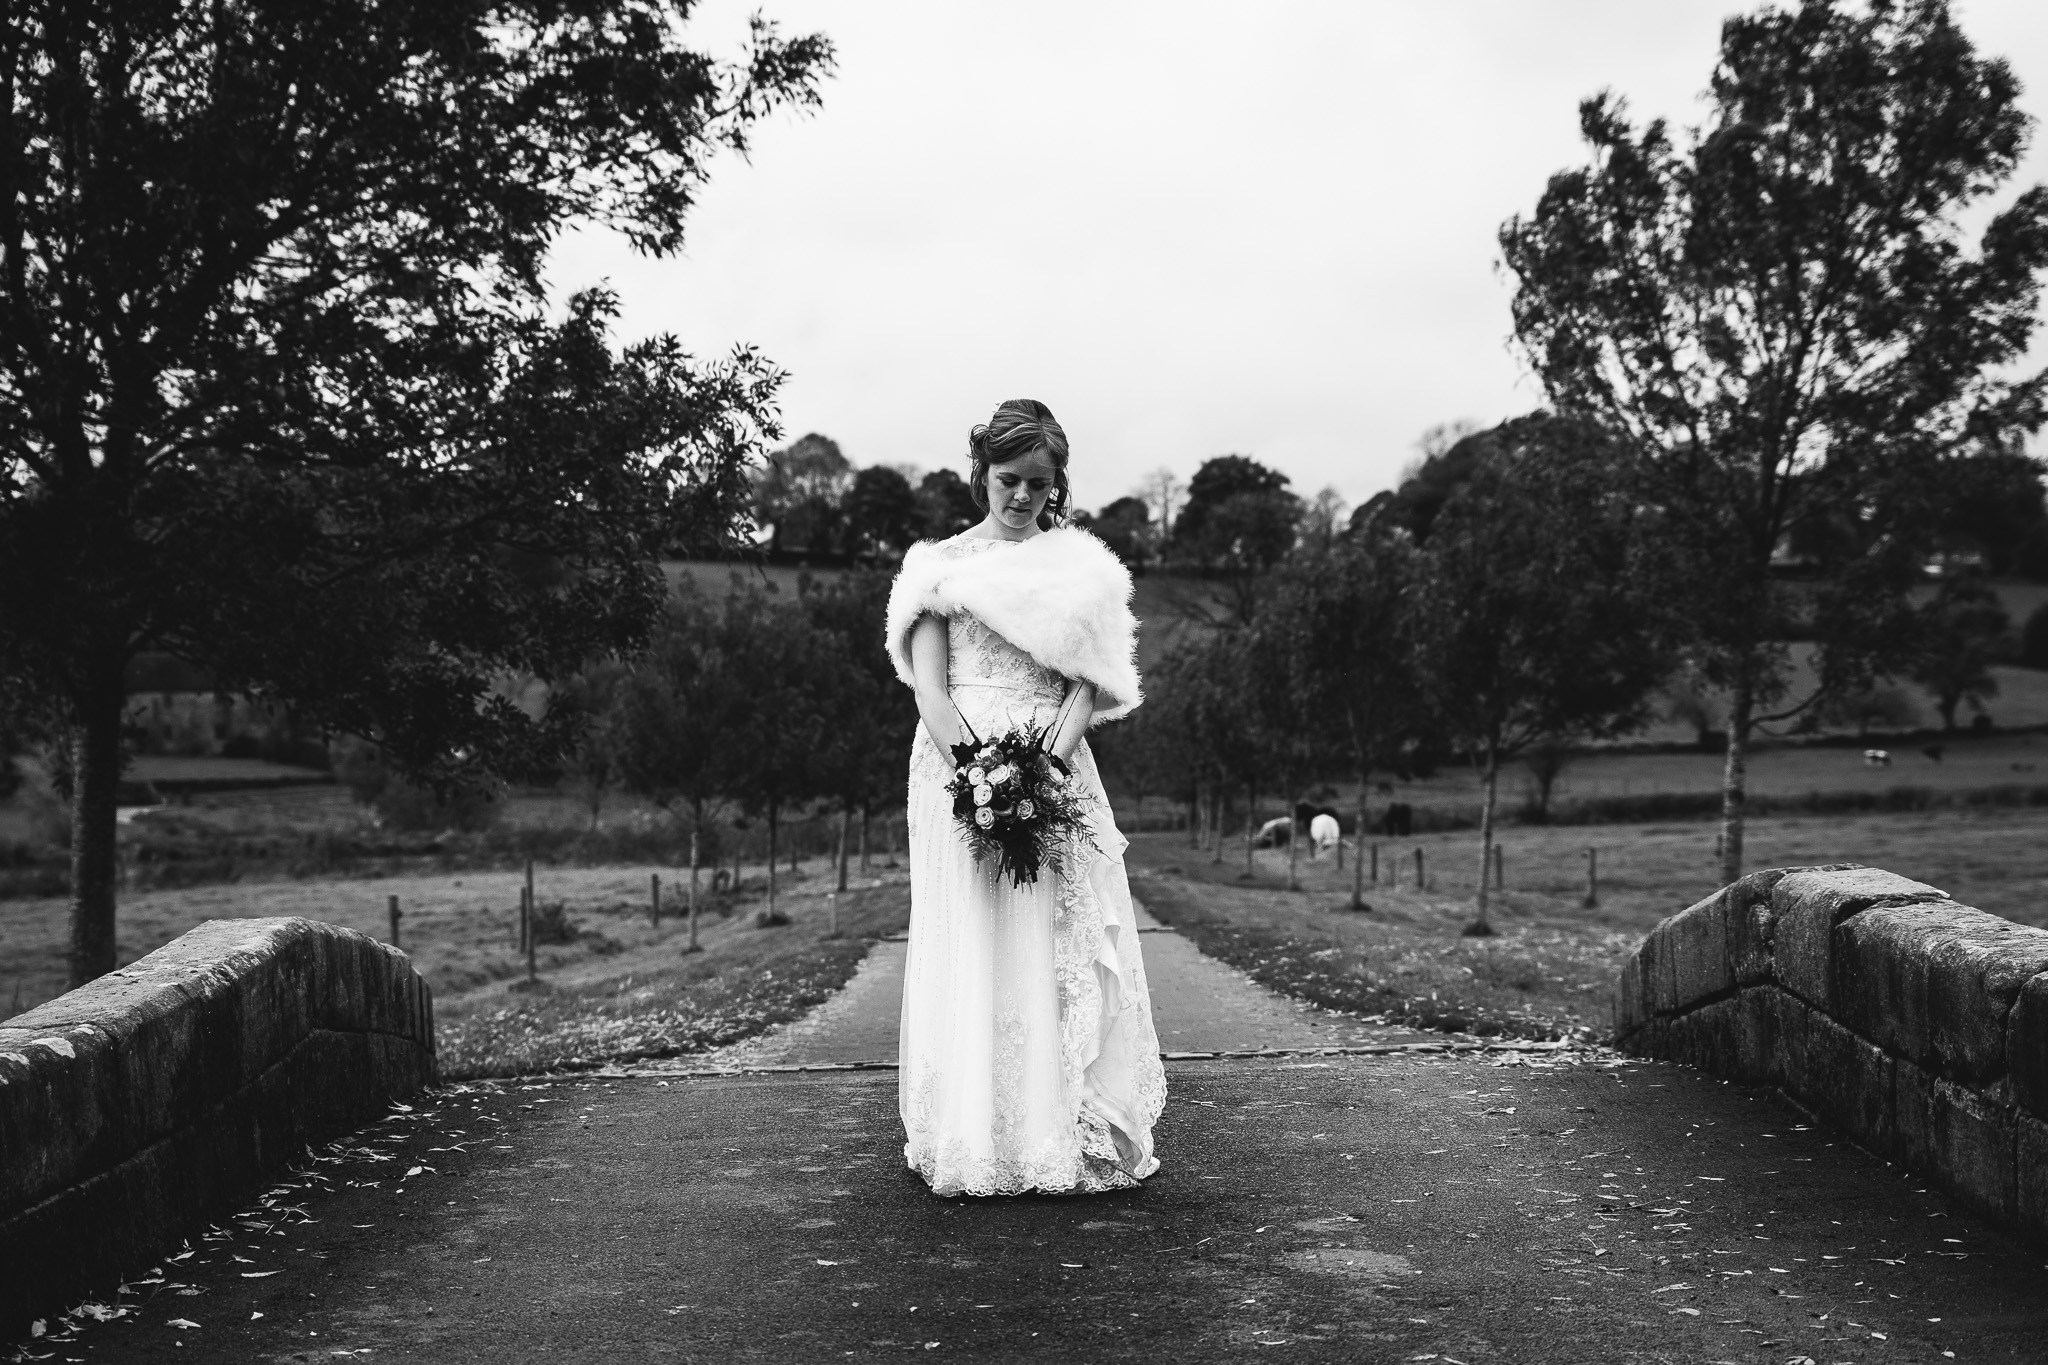 BRIDAL PICTURE WITH FLOWERS IN BLACK AND WHITE